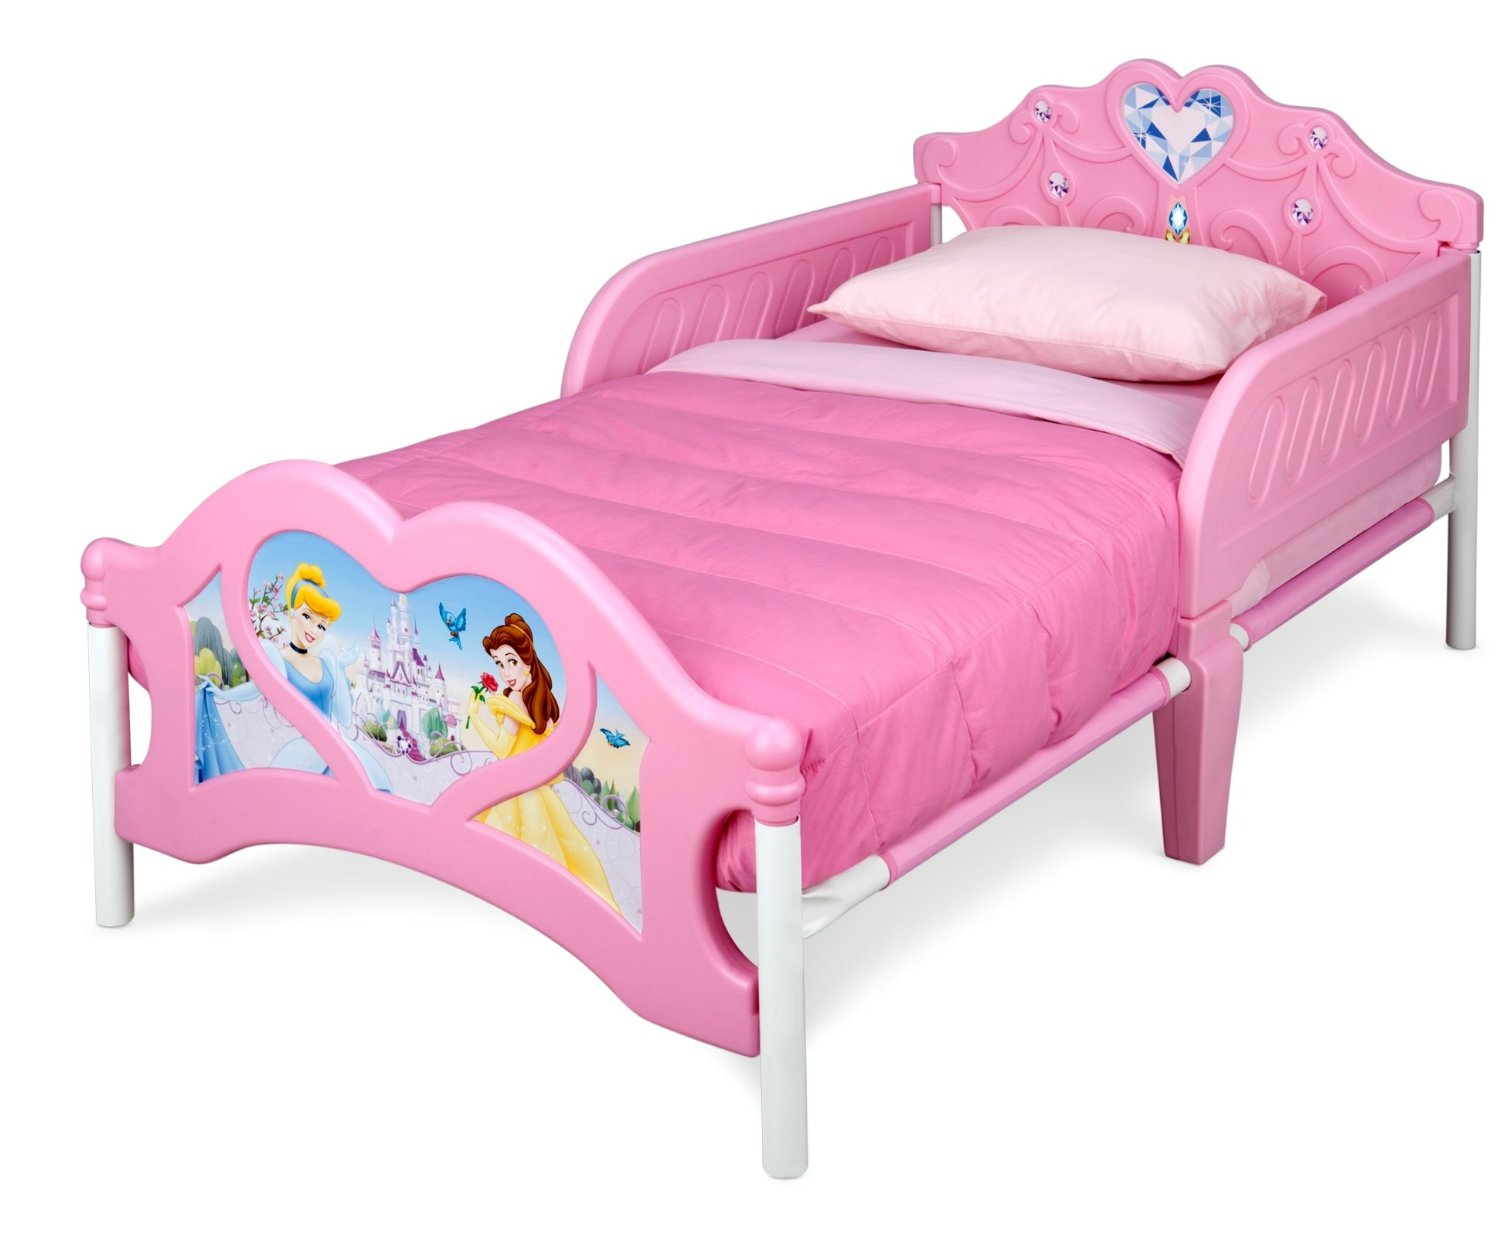 Muebles Disney Cama Infantil Princesas Disney 12bb86683ps